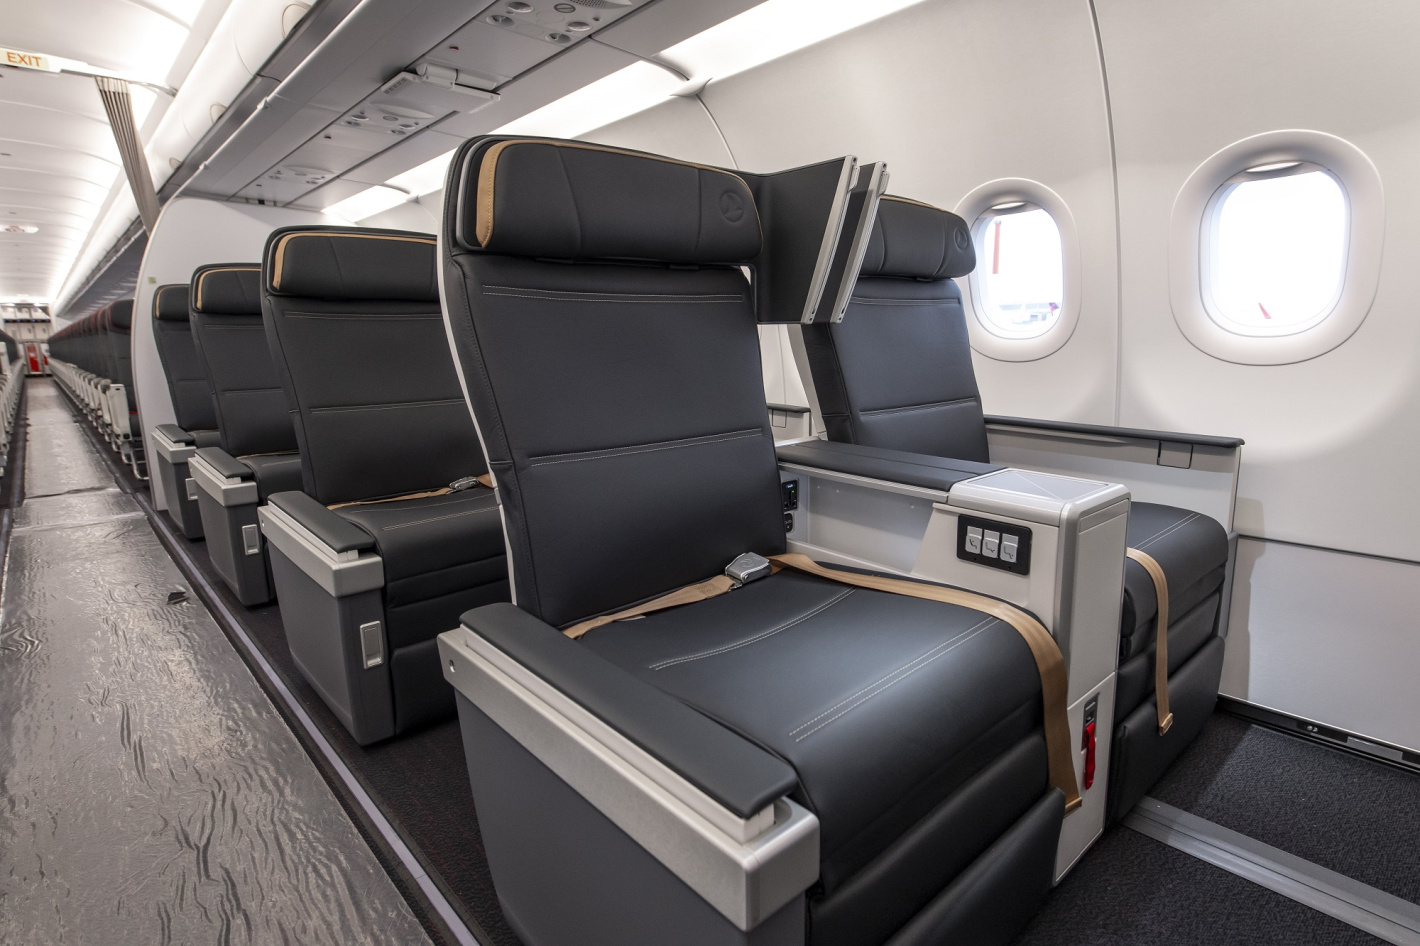 Turkish Airlines Airbus A321neo Business Class